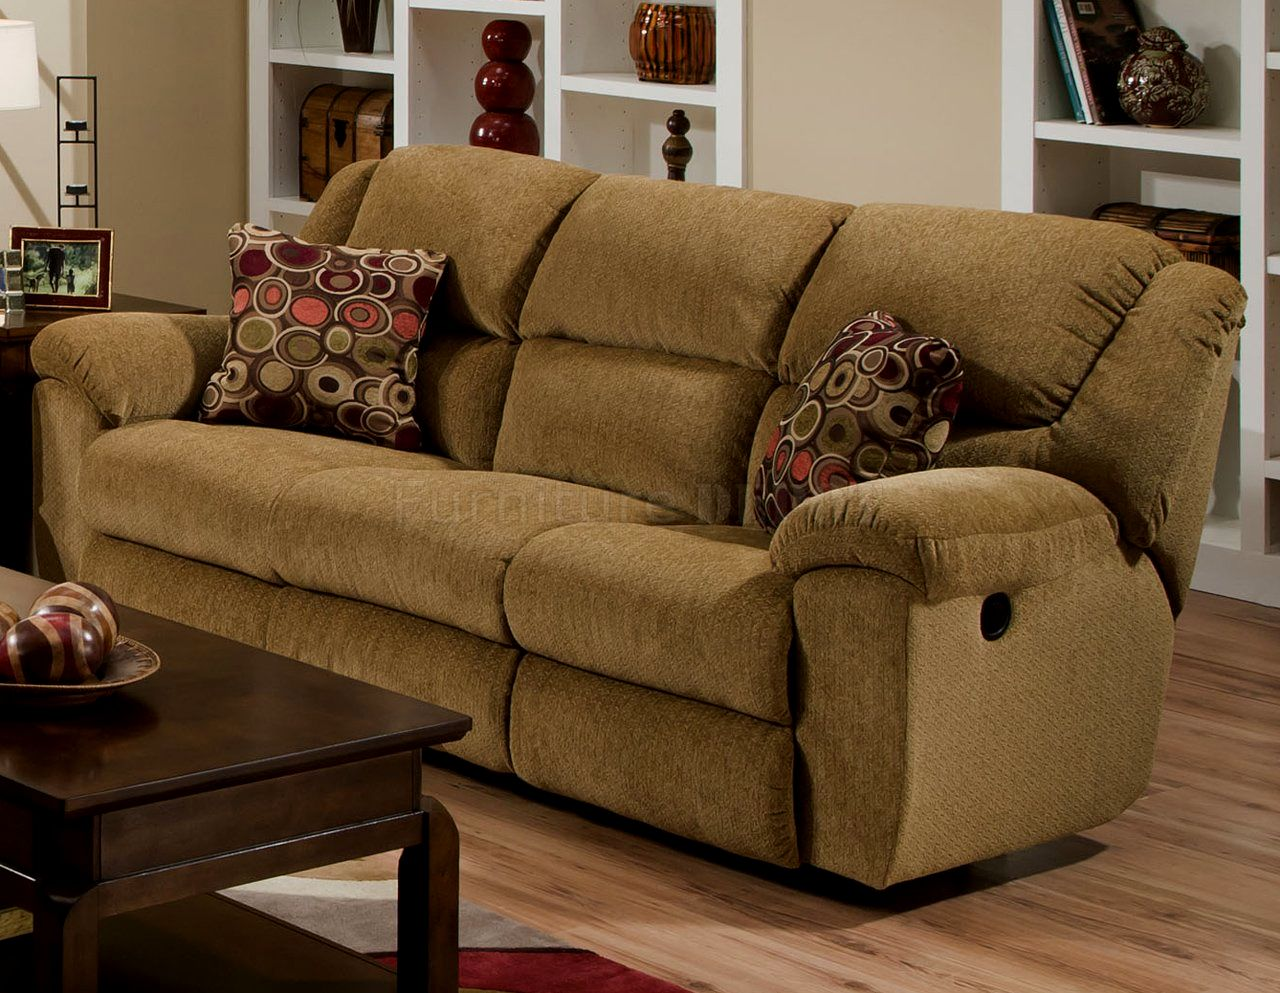 fancy recliner sofa sets inspiration-Fascinating Recliner sofa Sets Layout